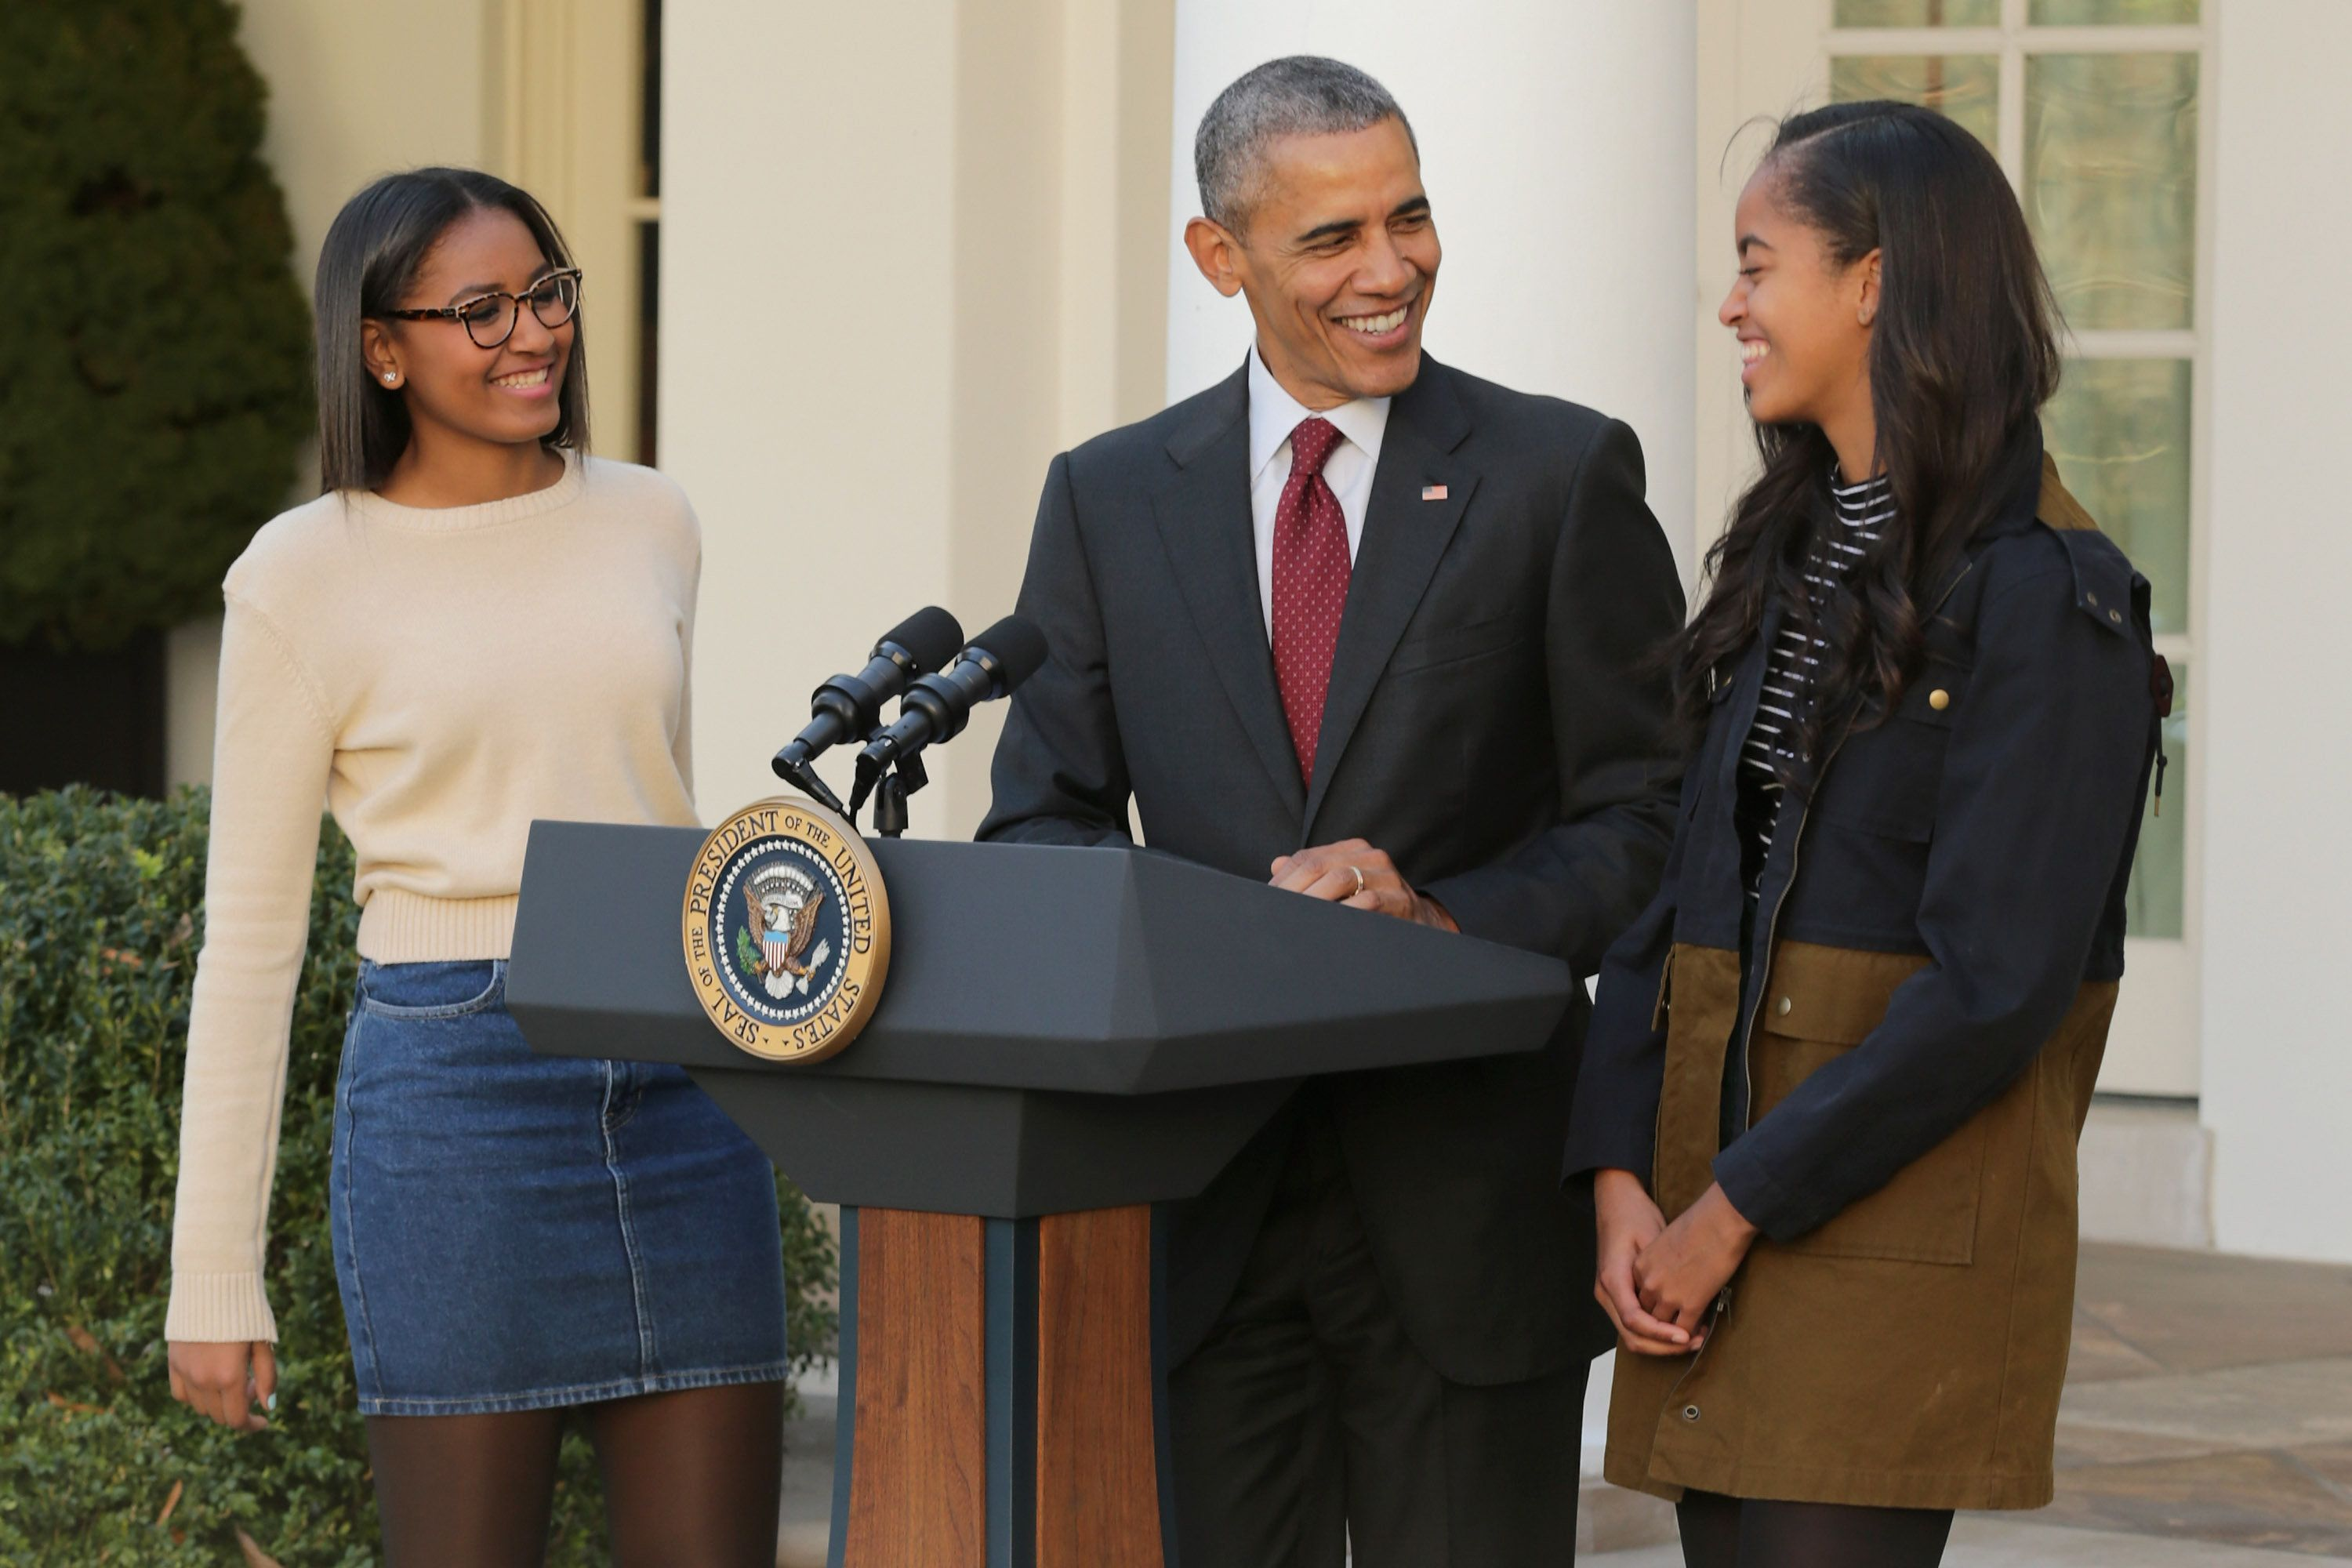 Former U.S. President Barack Obama with his daughters, Sasha and Malia, during an annual turkey pardoning ceremony.